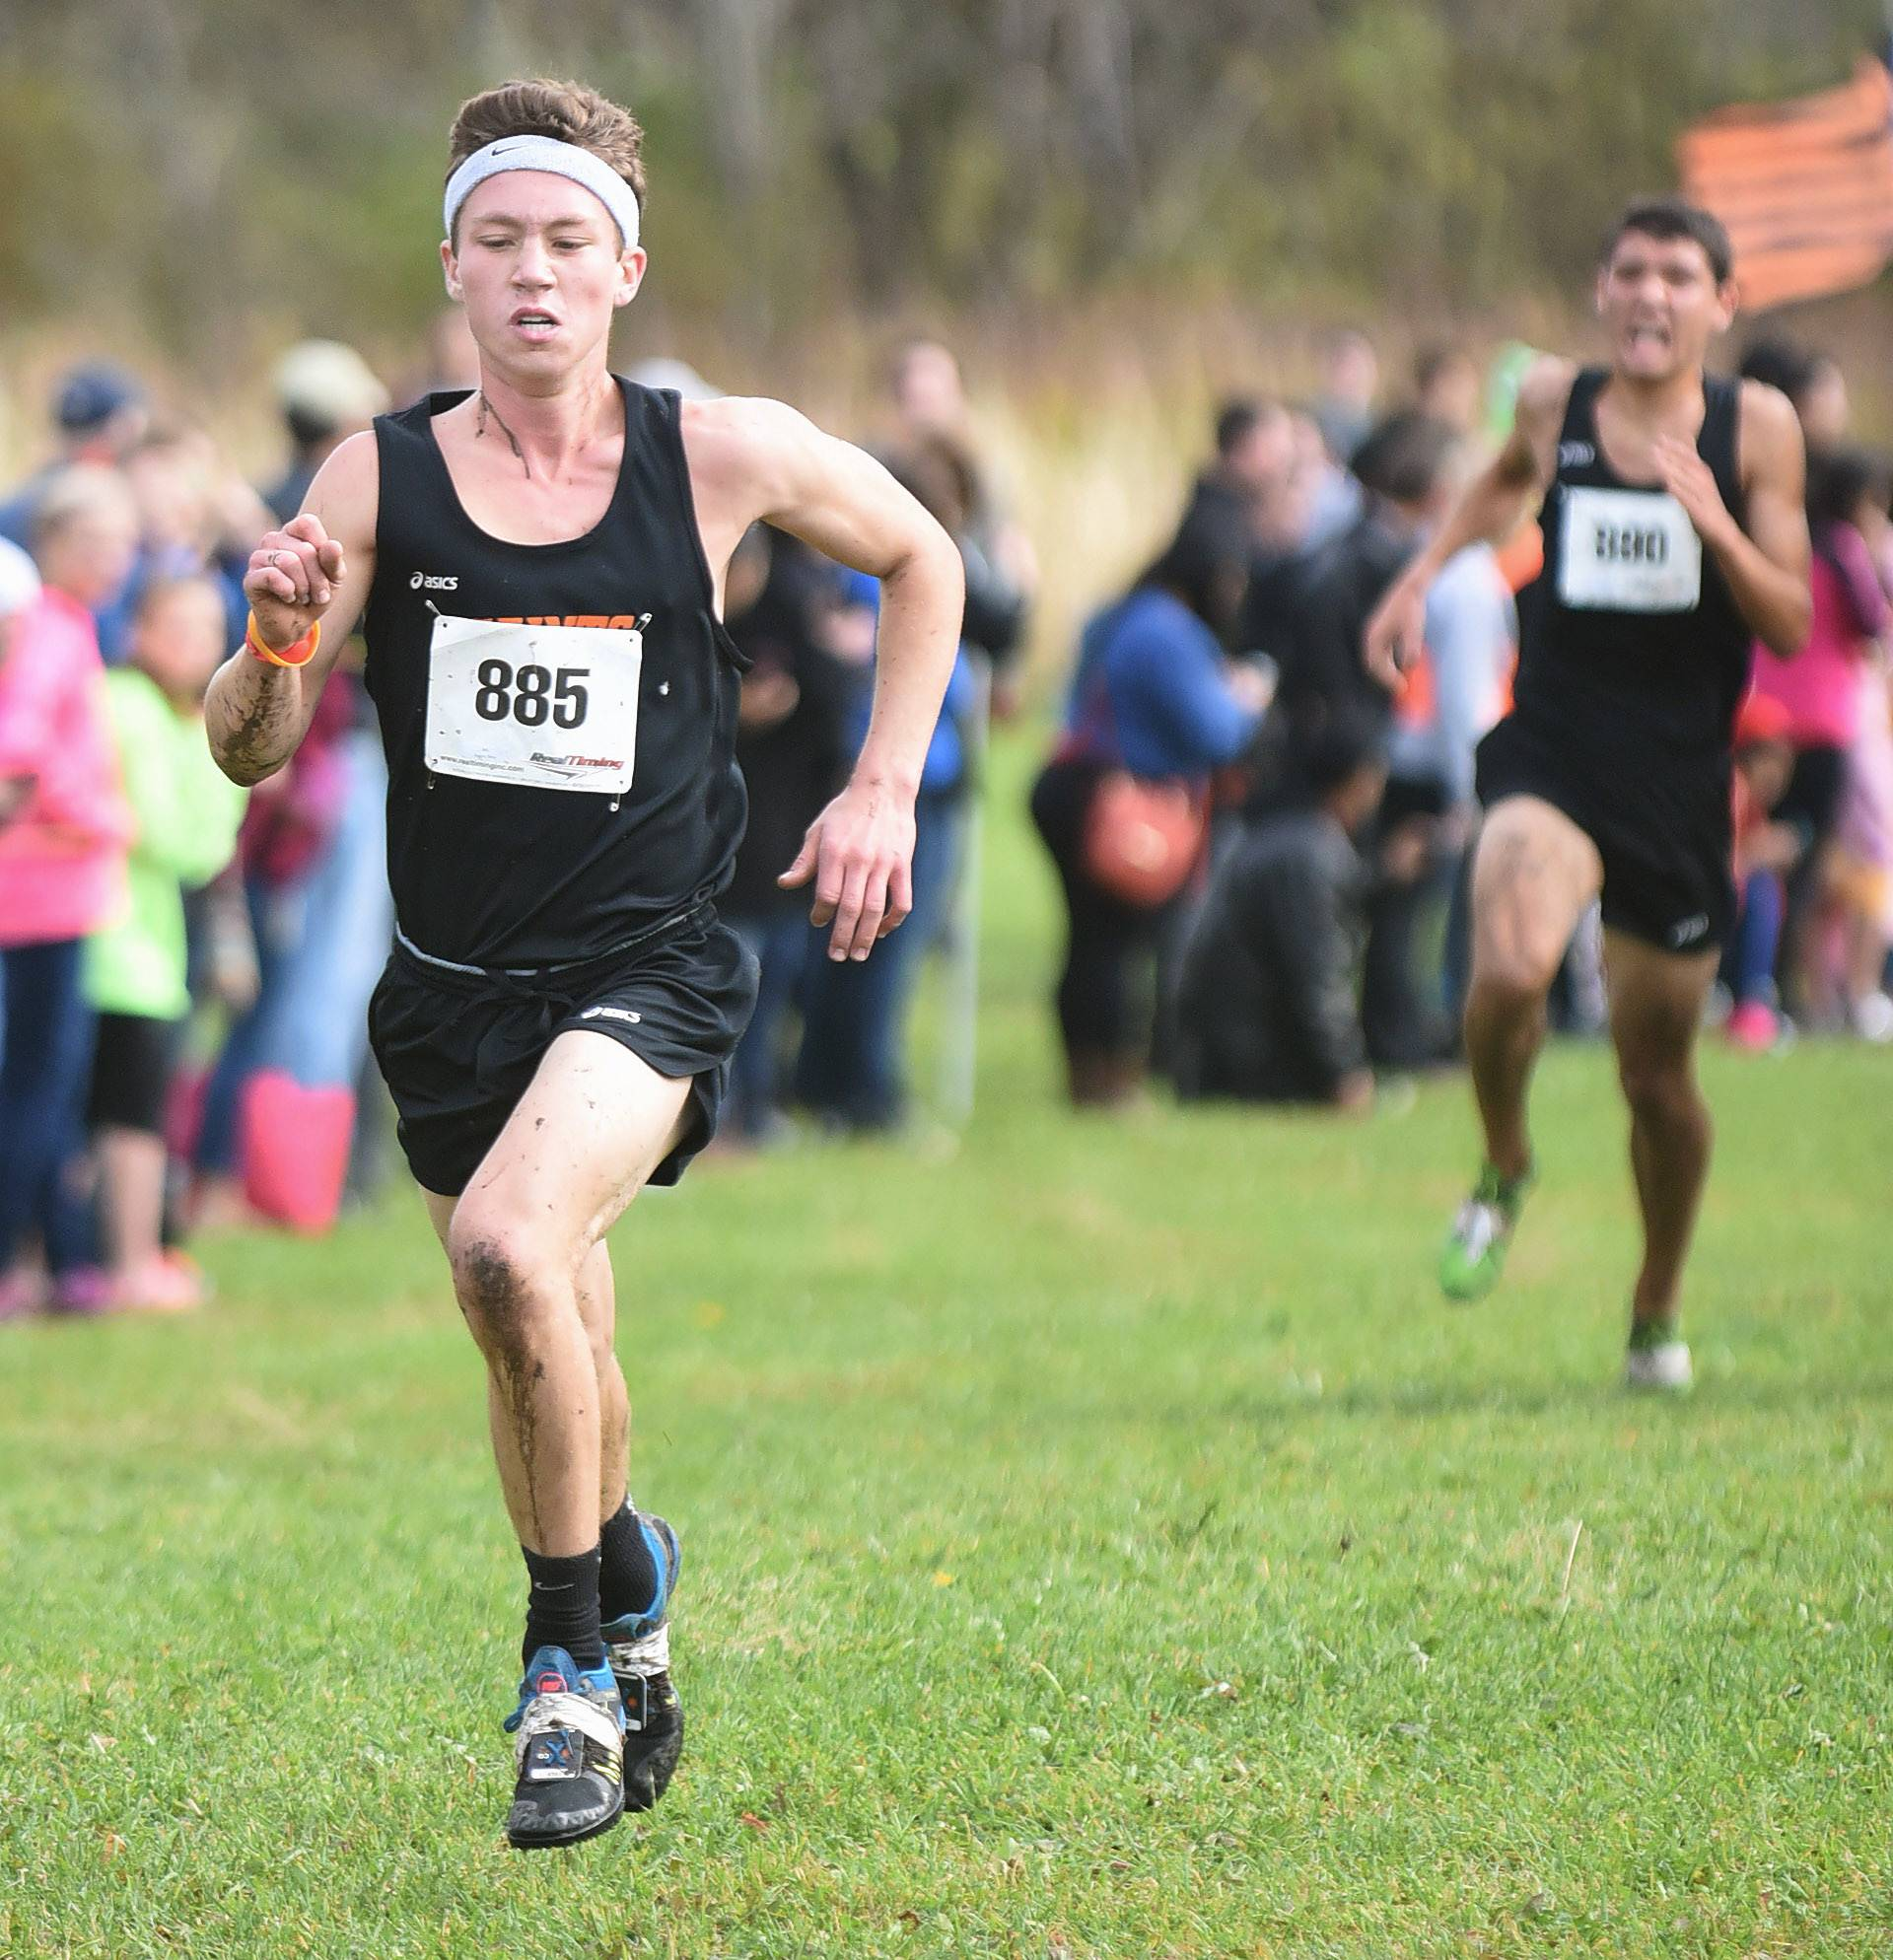 St. Charles East's Mike Gerkin took fourth with a time of 16:26.8 at the St. Charles North regional on Saturday.